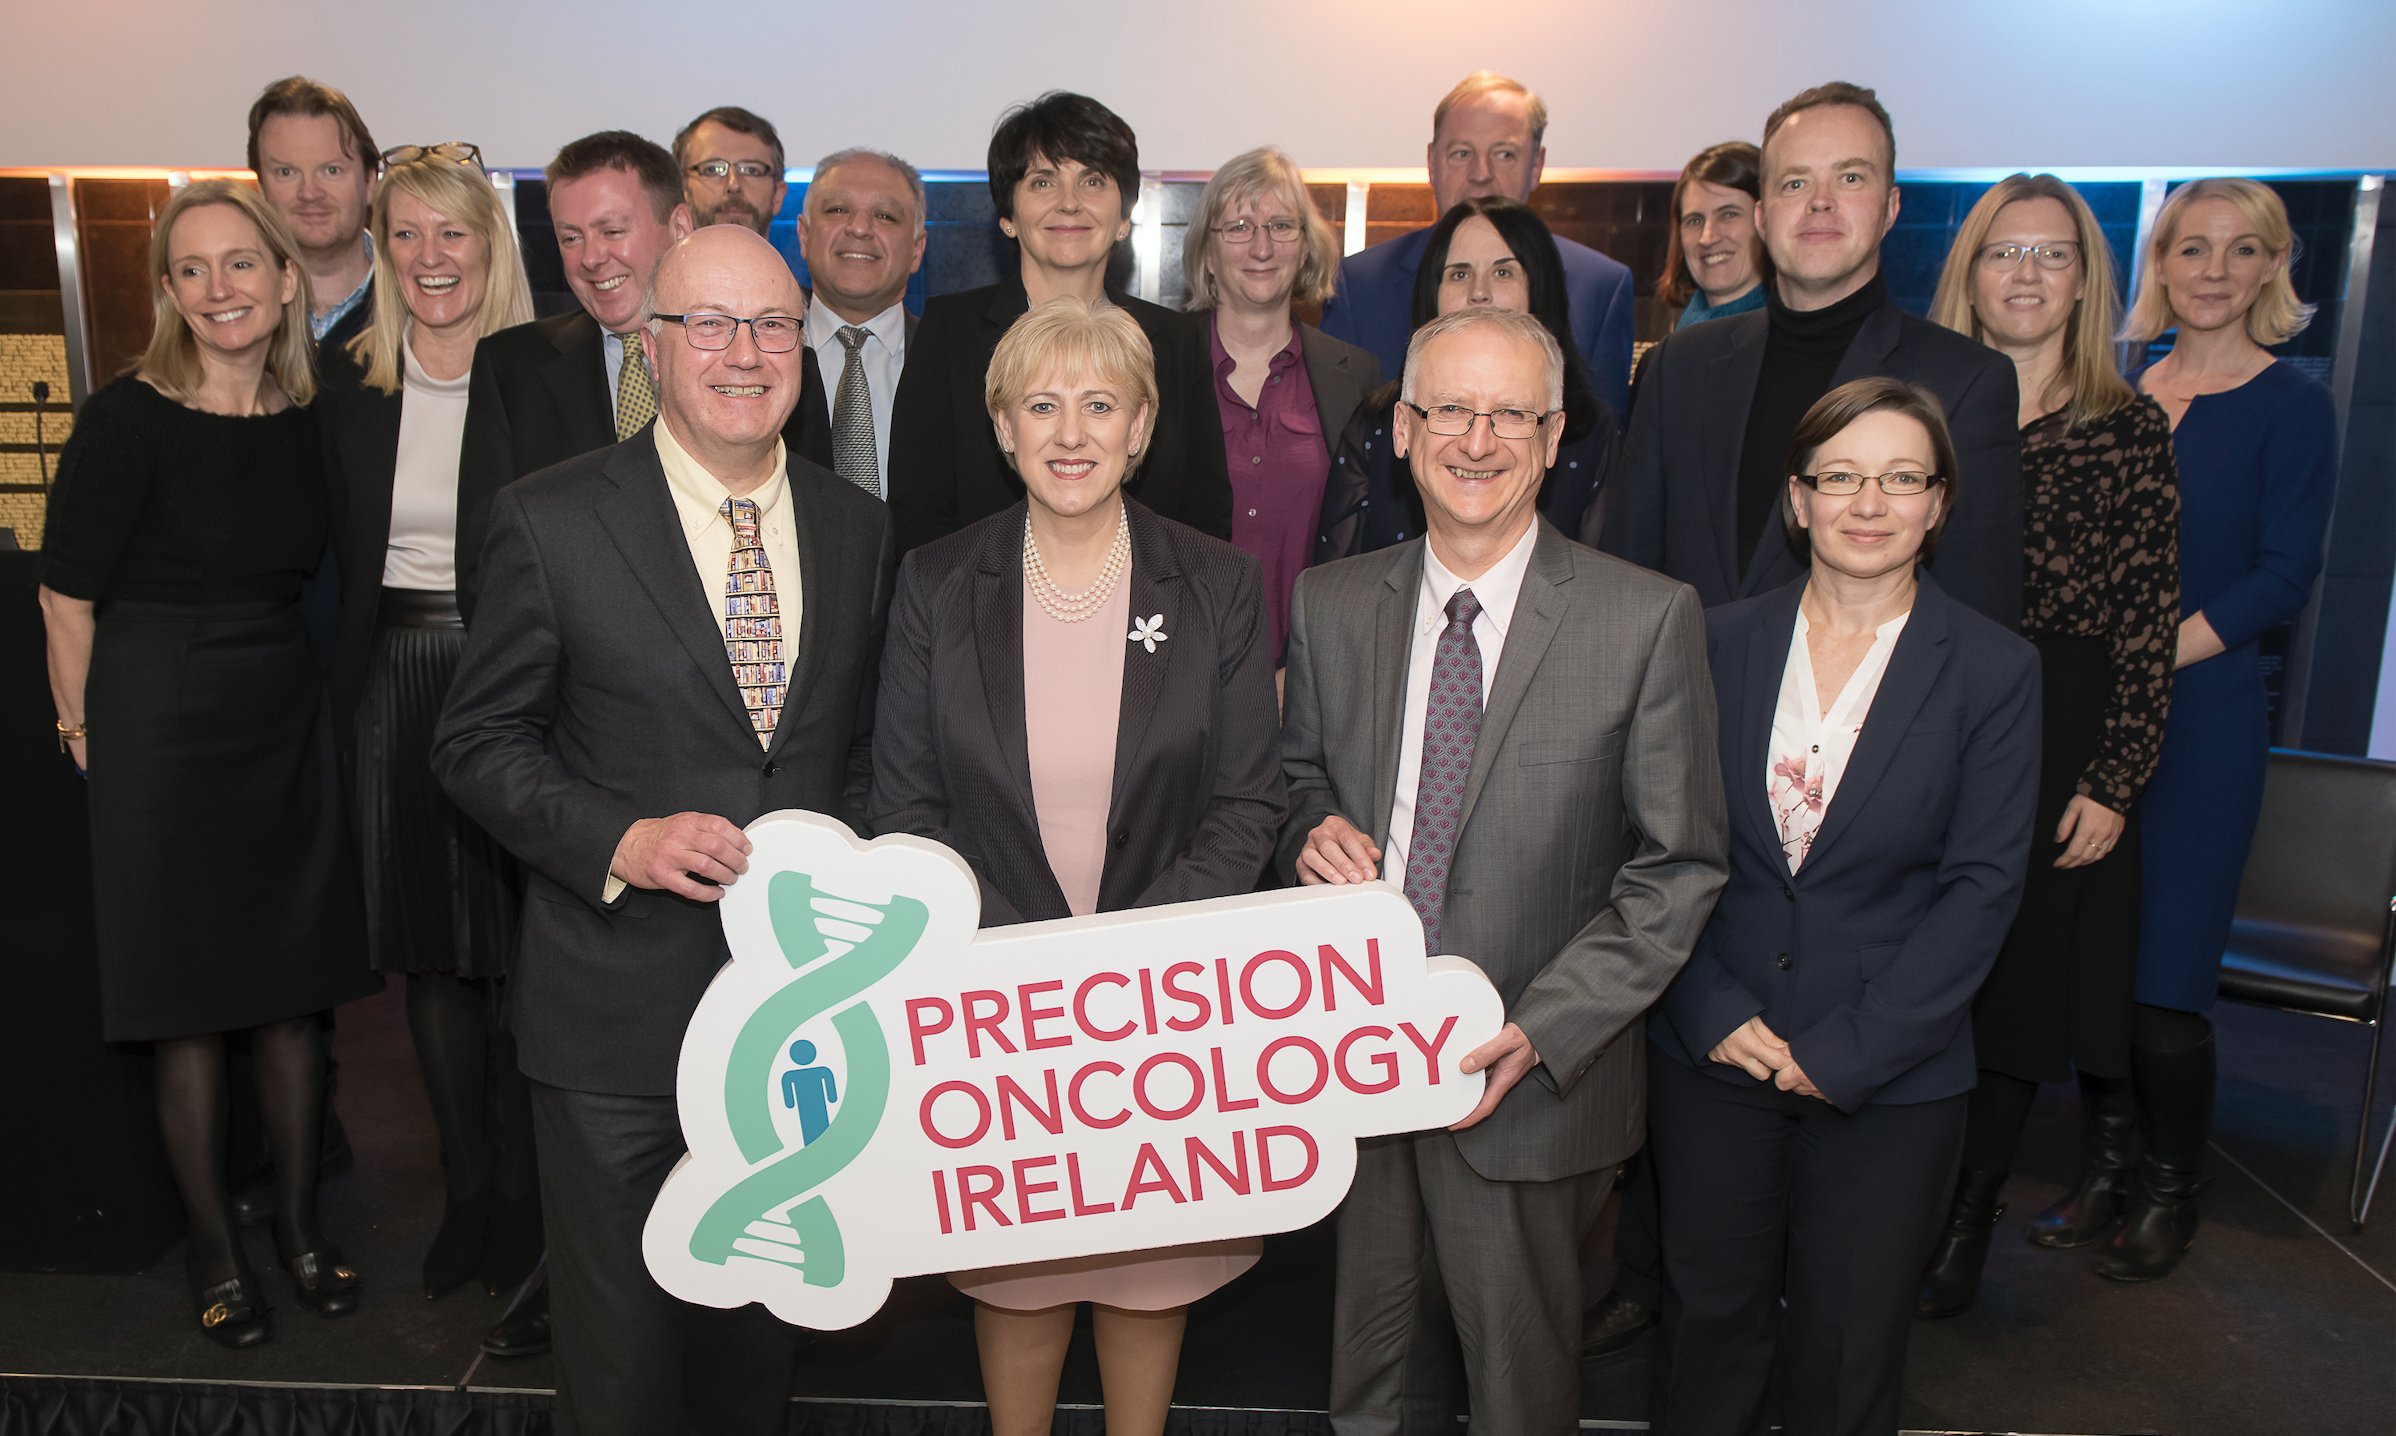 Launch of Precision Oncology Ireland